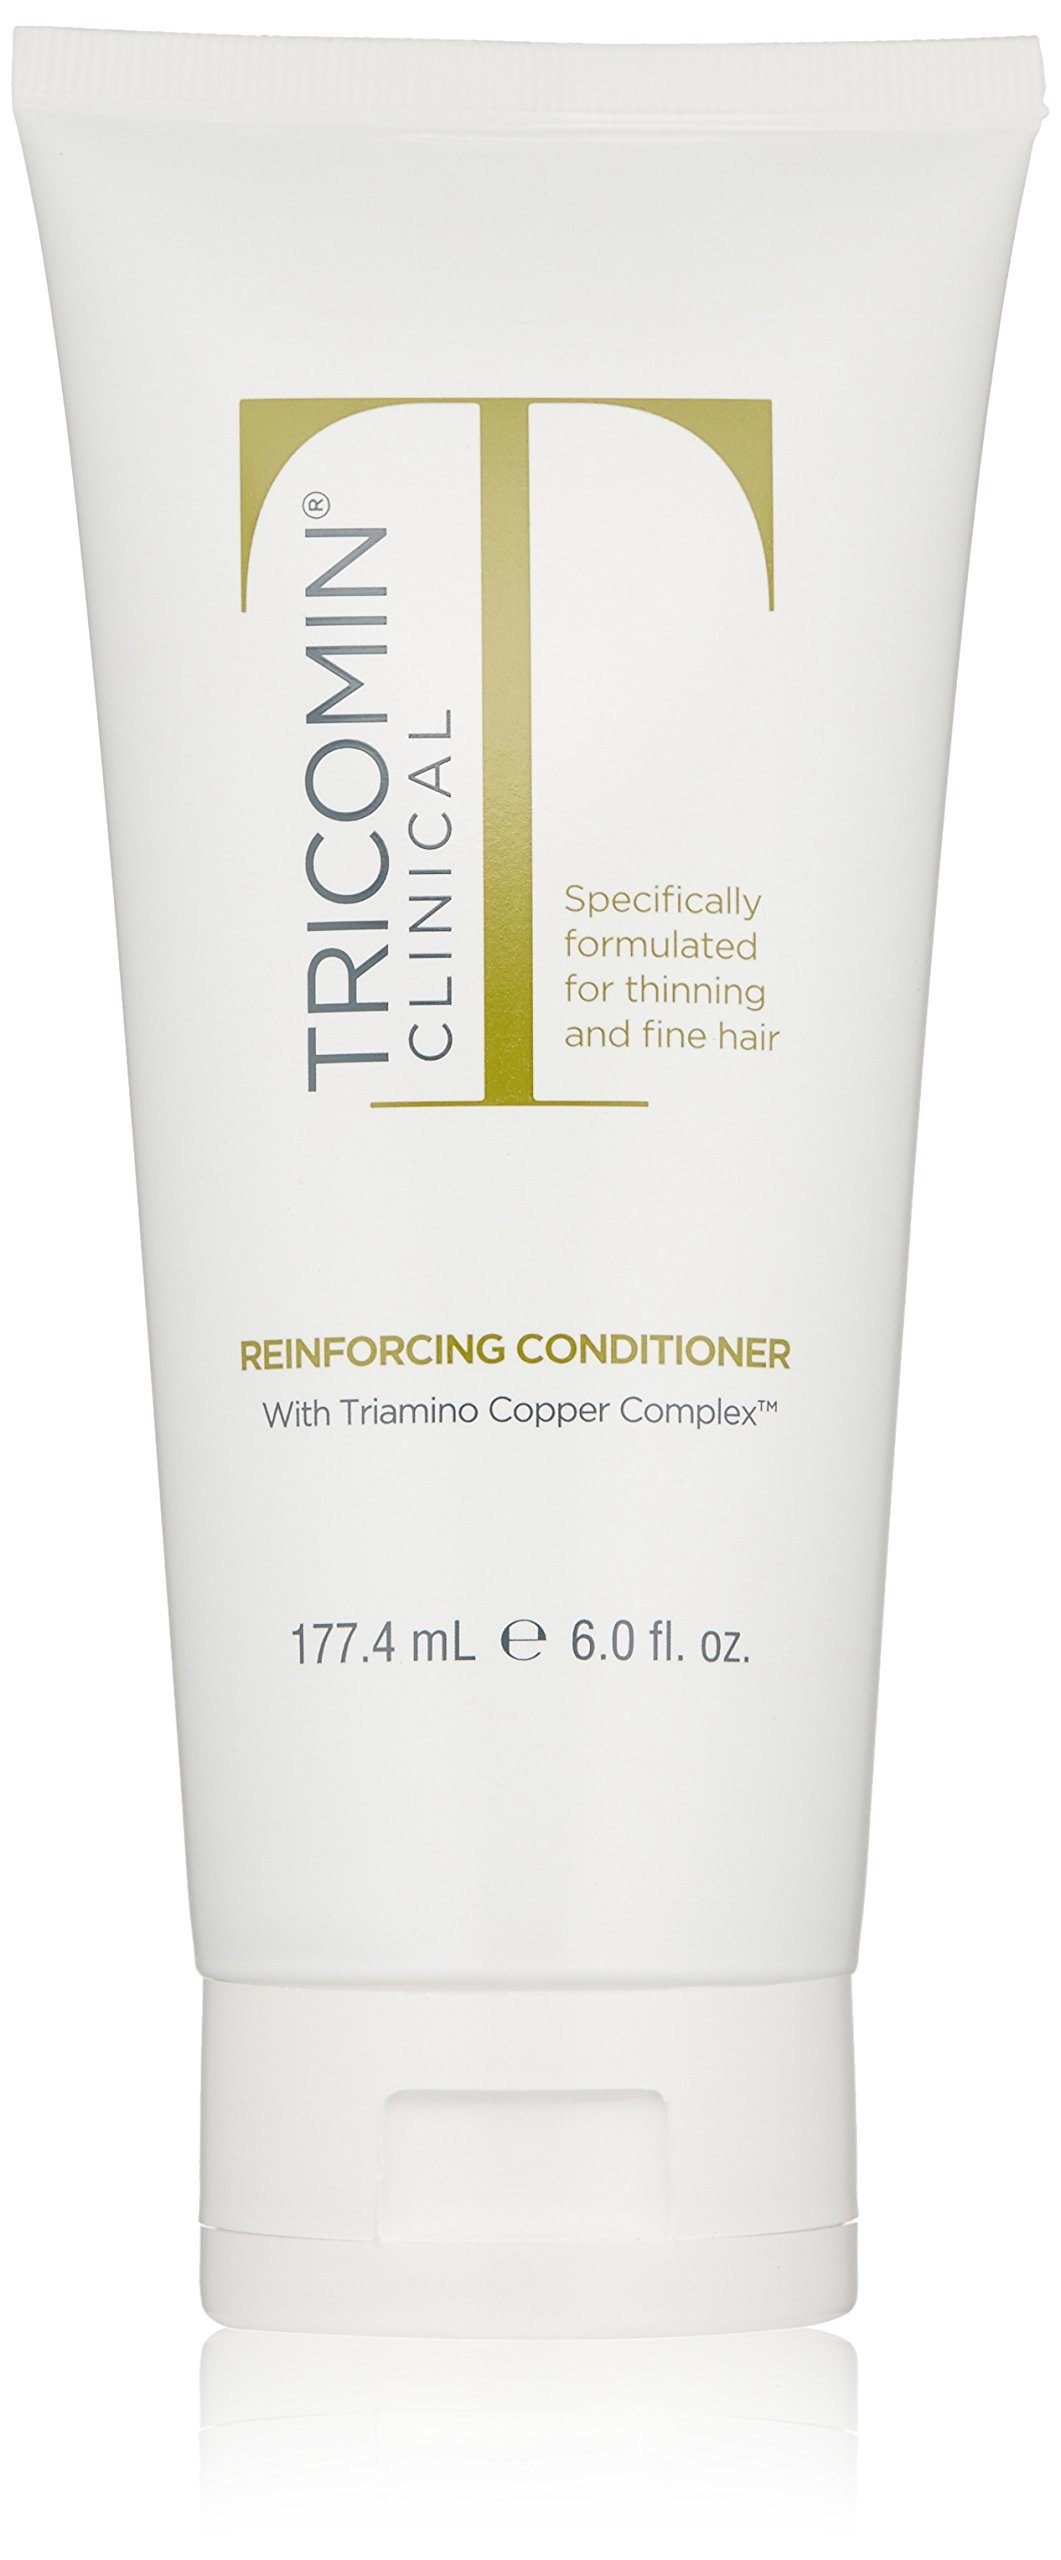 NEOVA Tricomin Reinforcing Conditioner, 6.0 Fl Oz by NEOVA